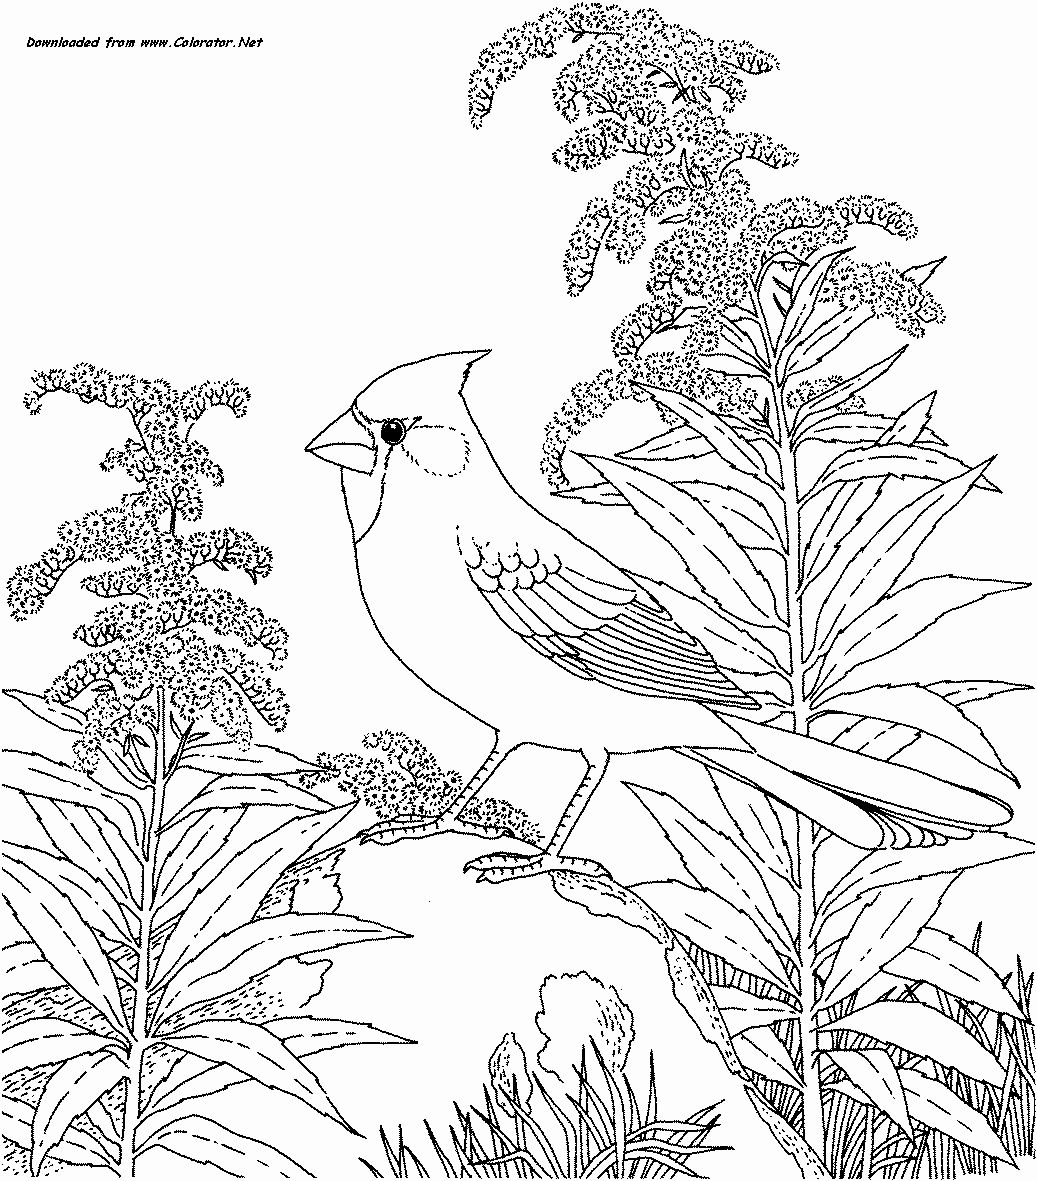 Nature Coloring Pages To Print Beautiful Coloring Pages Birds For Adults Bird Coloring Pages Flower Coloring Pages Coloring Pages Winter